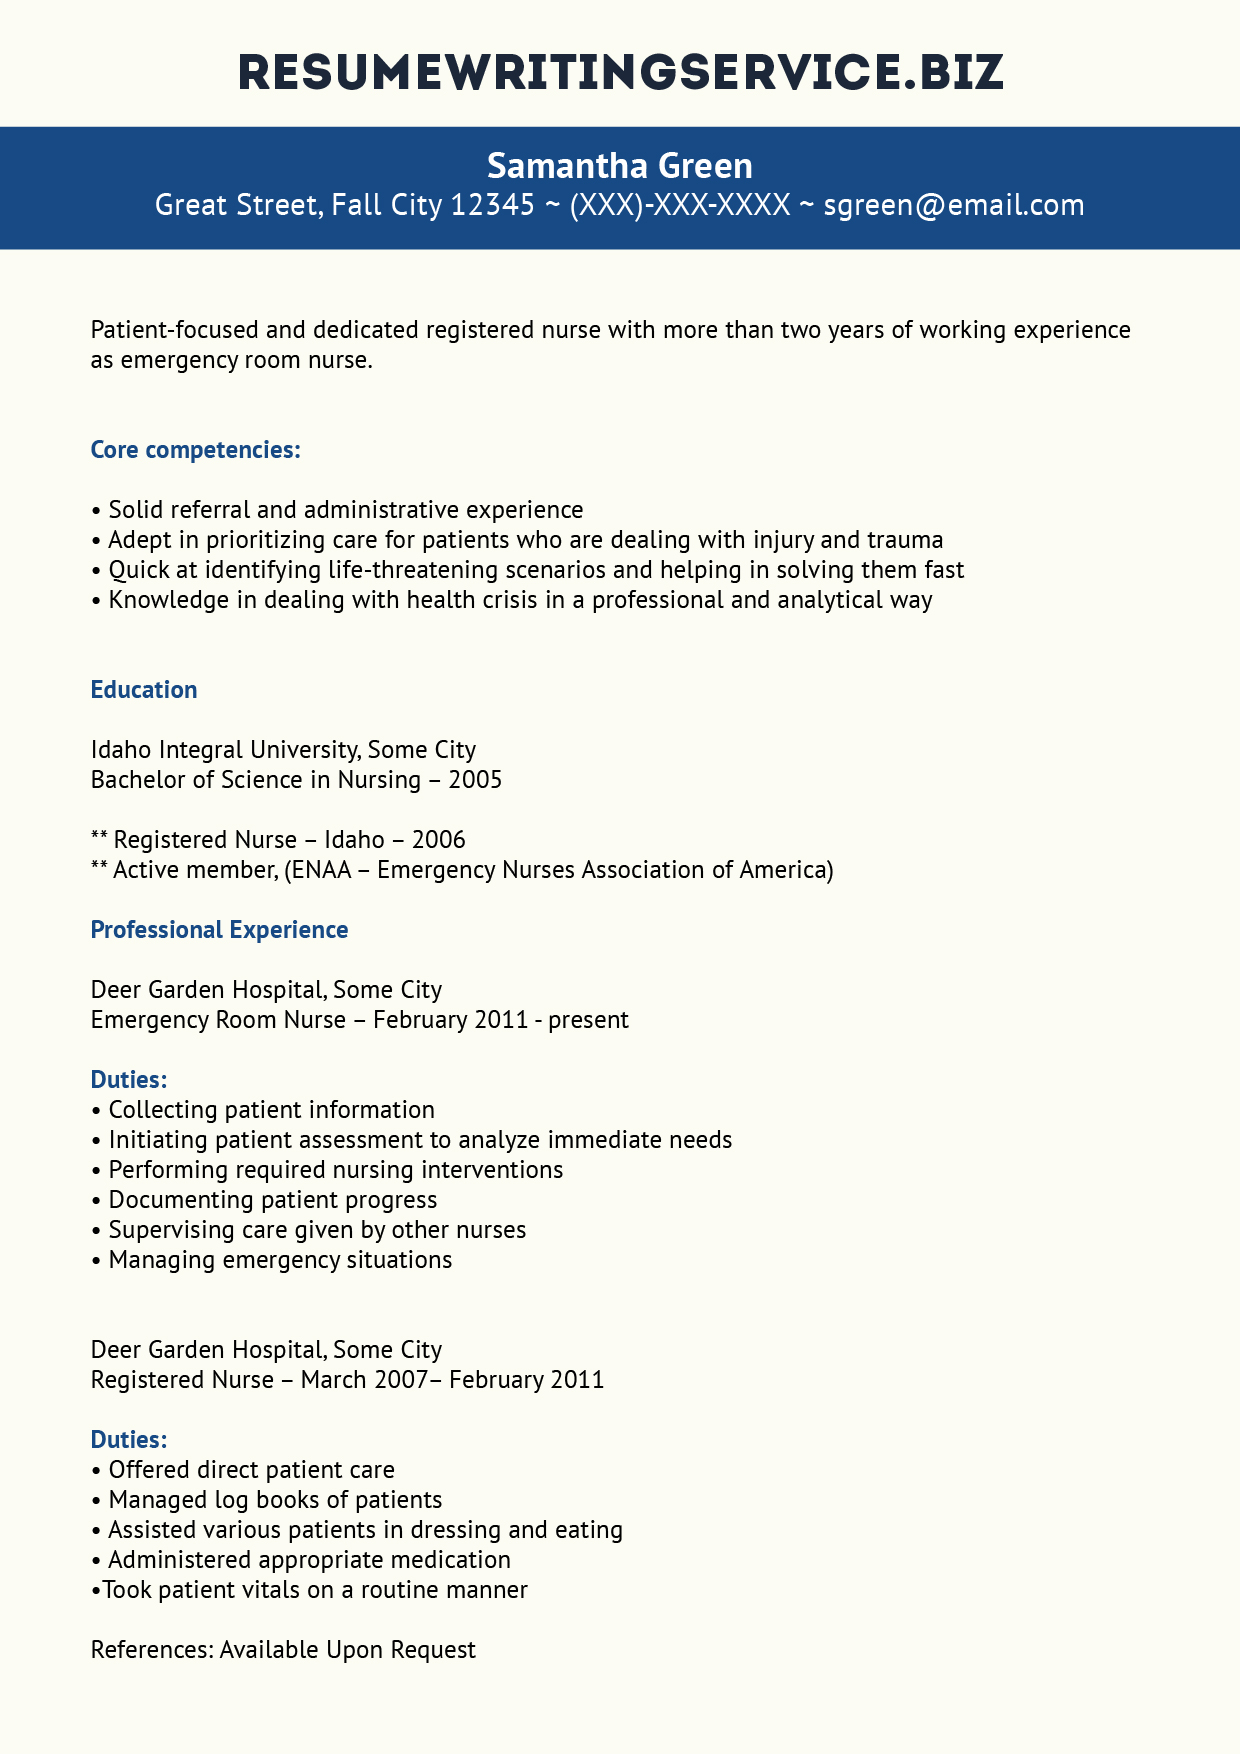 Nurses Resume Format Samples Professional Er Nurse Resume Example Resume Writing Service